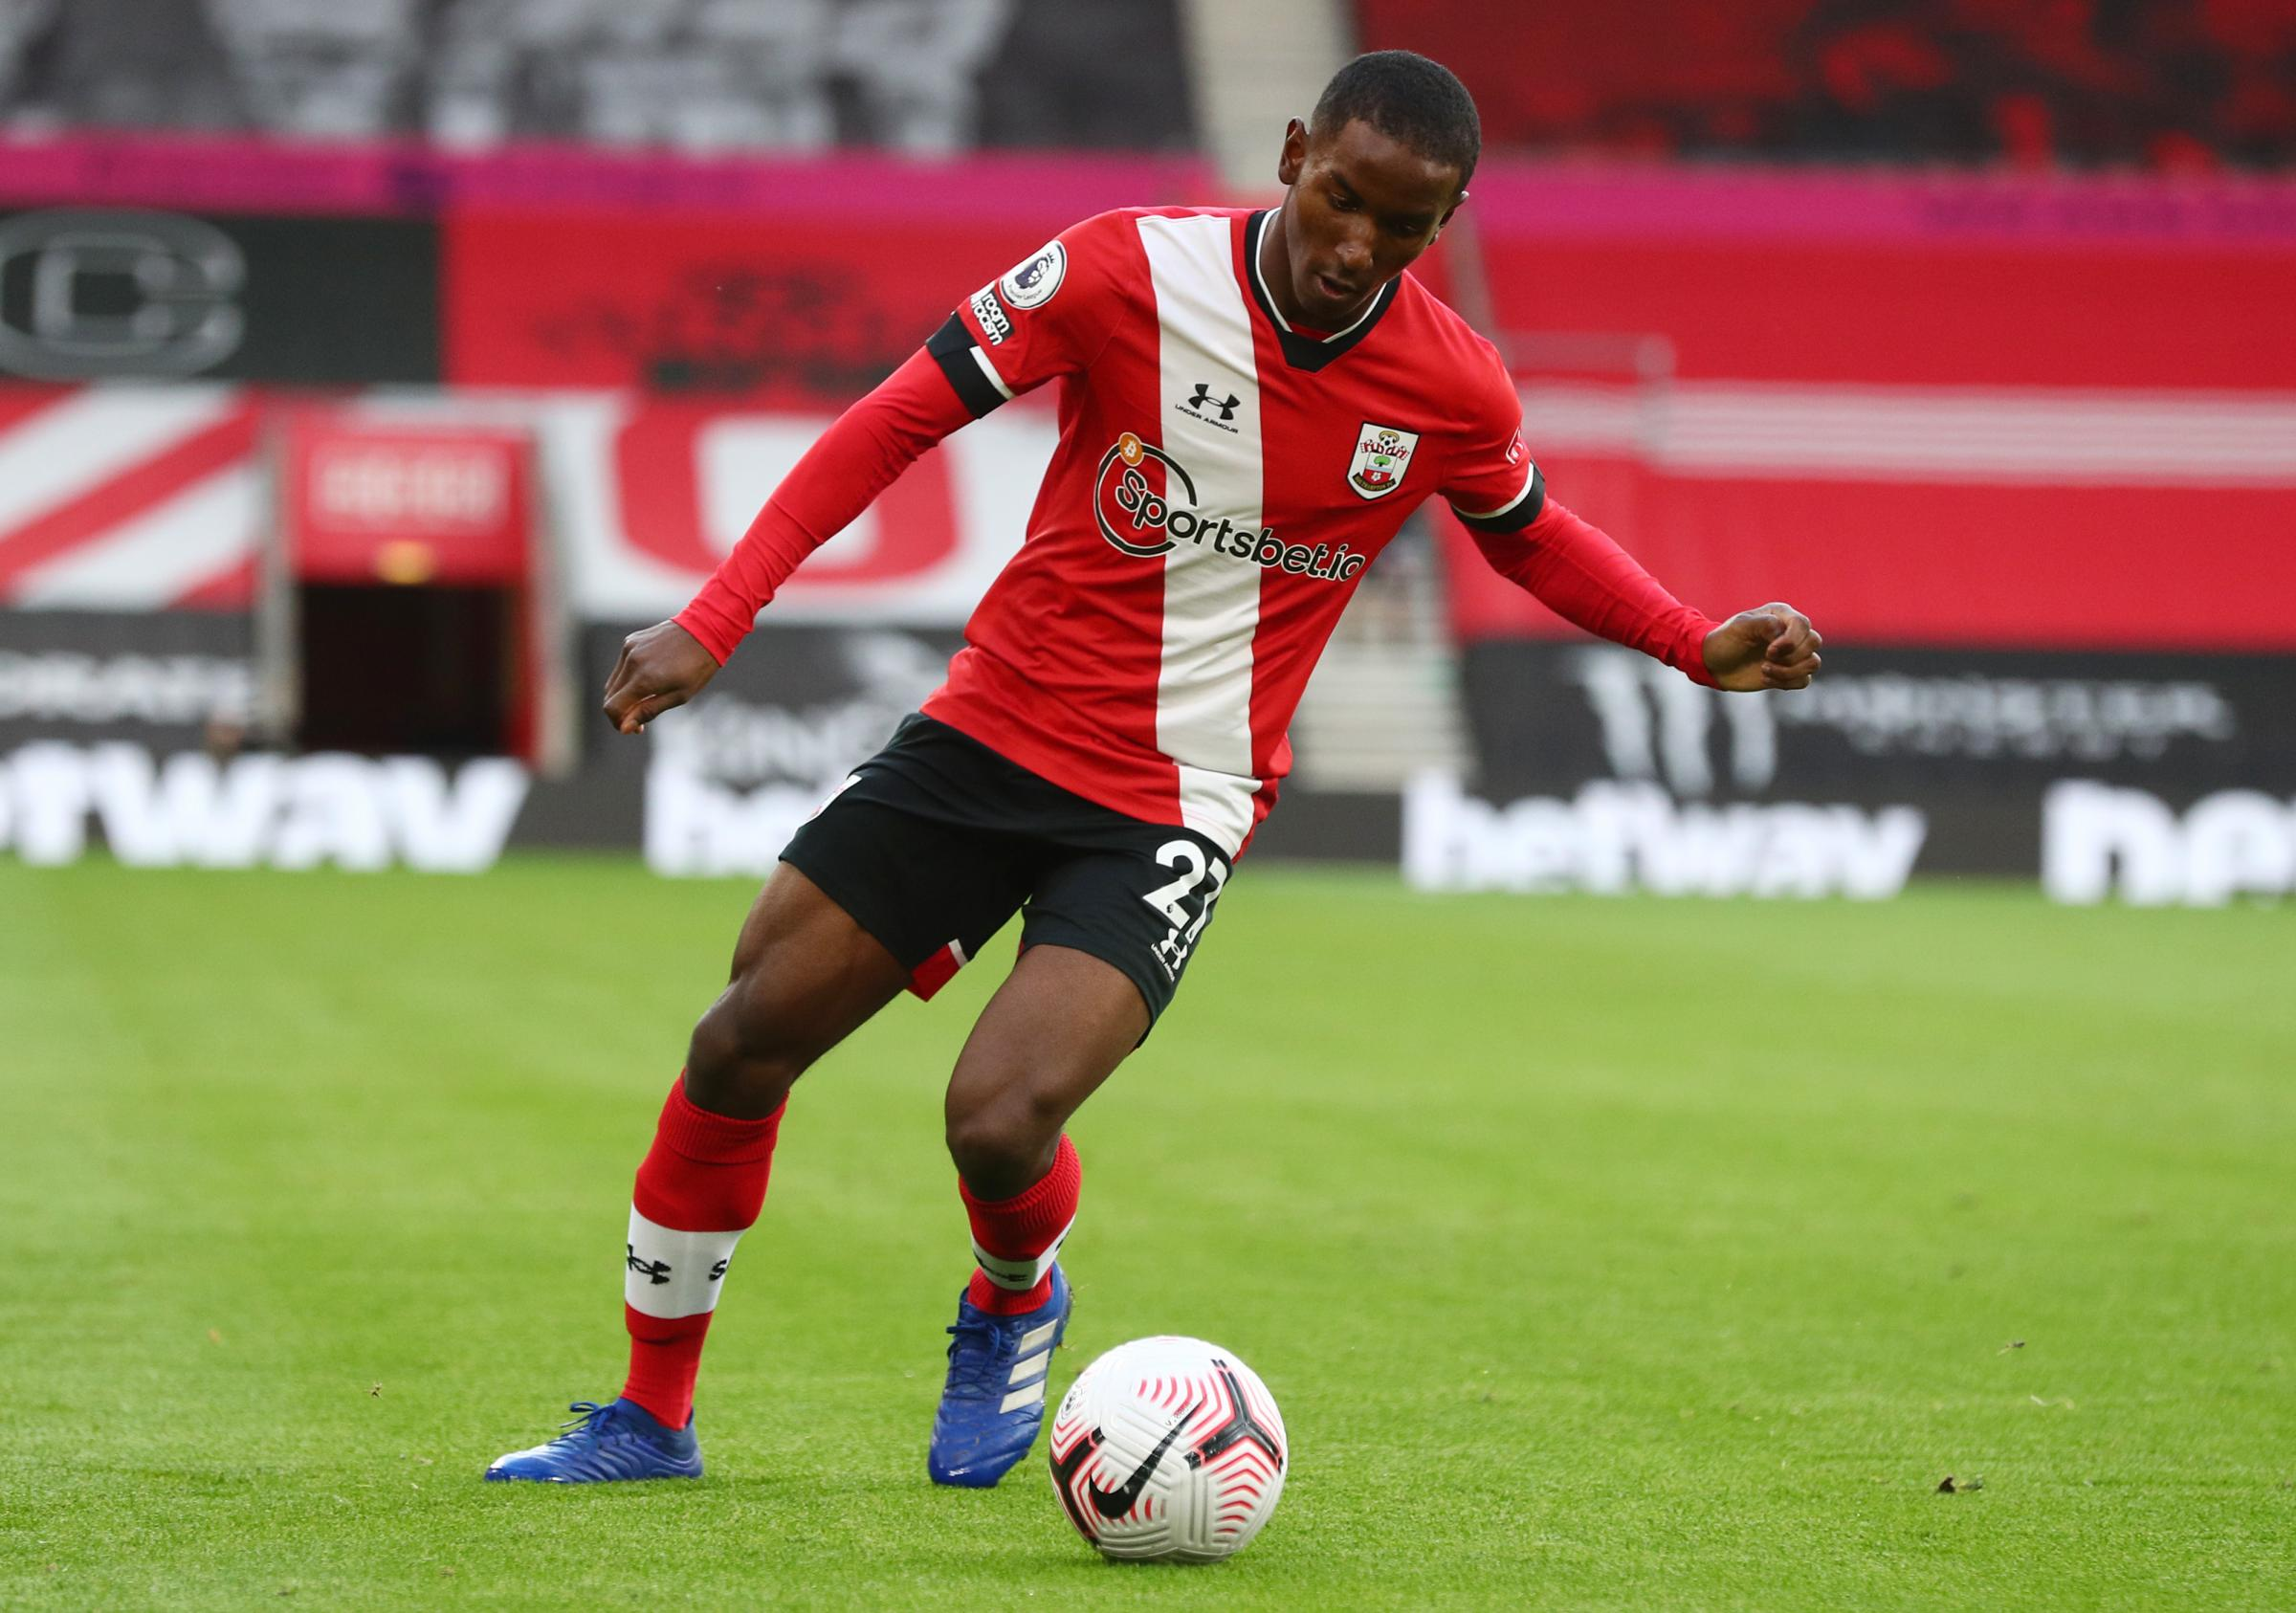 Diallo plays 90 minutes in Saints' B team defeat